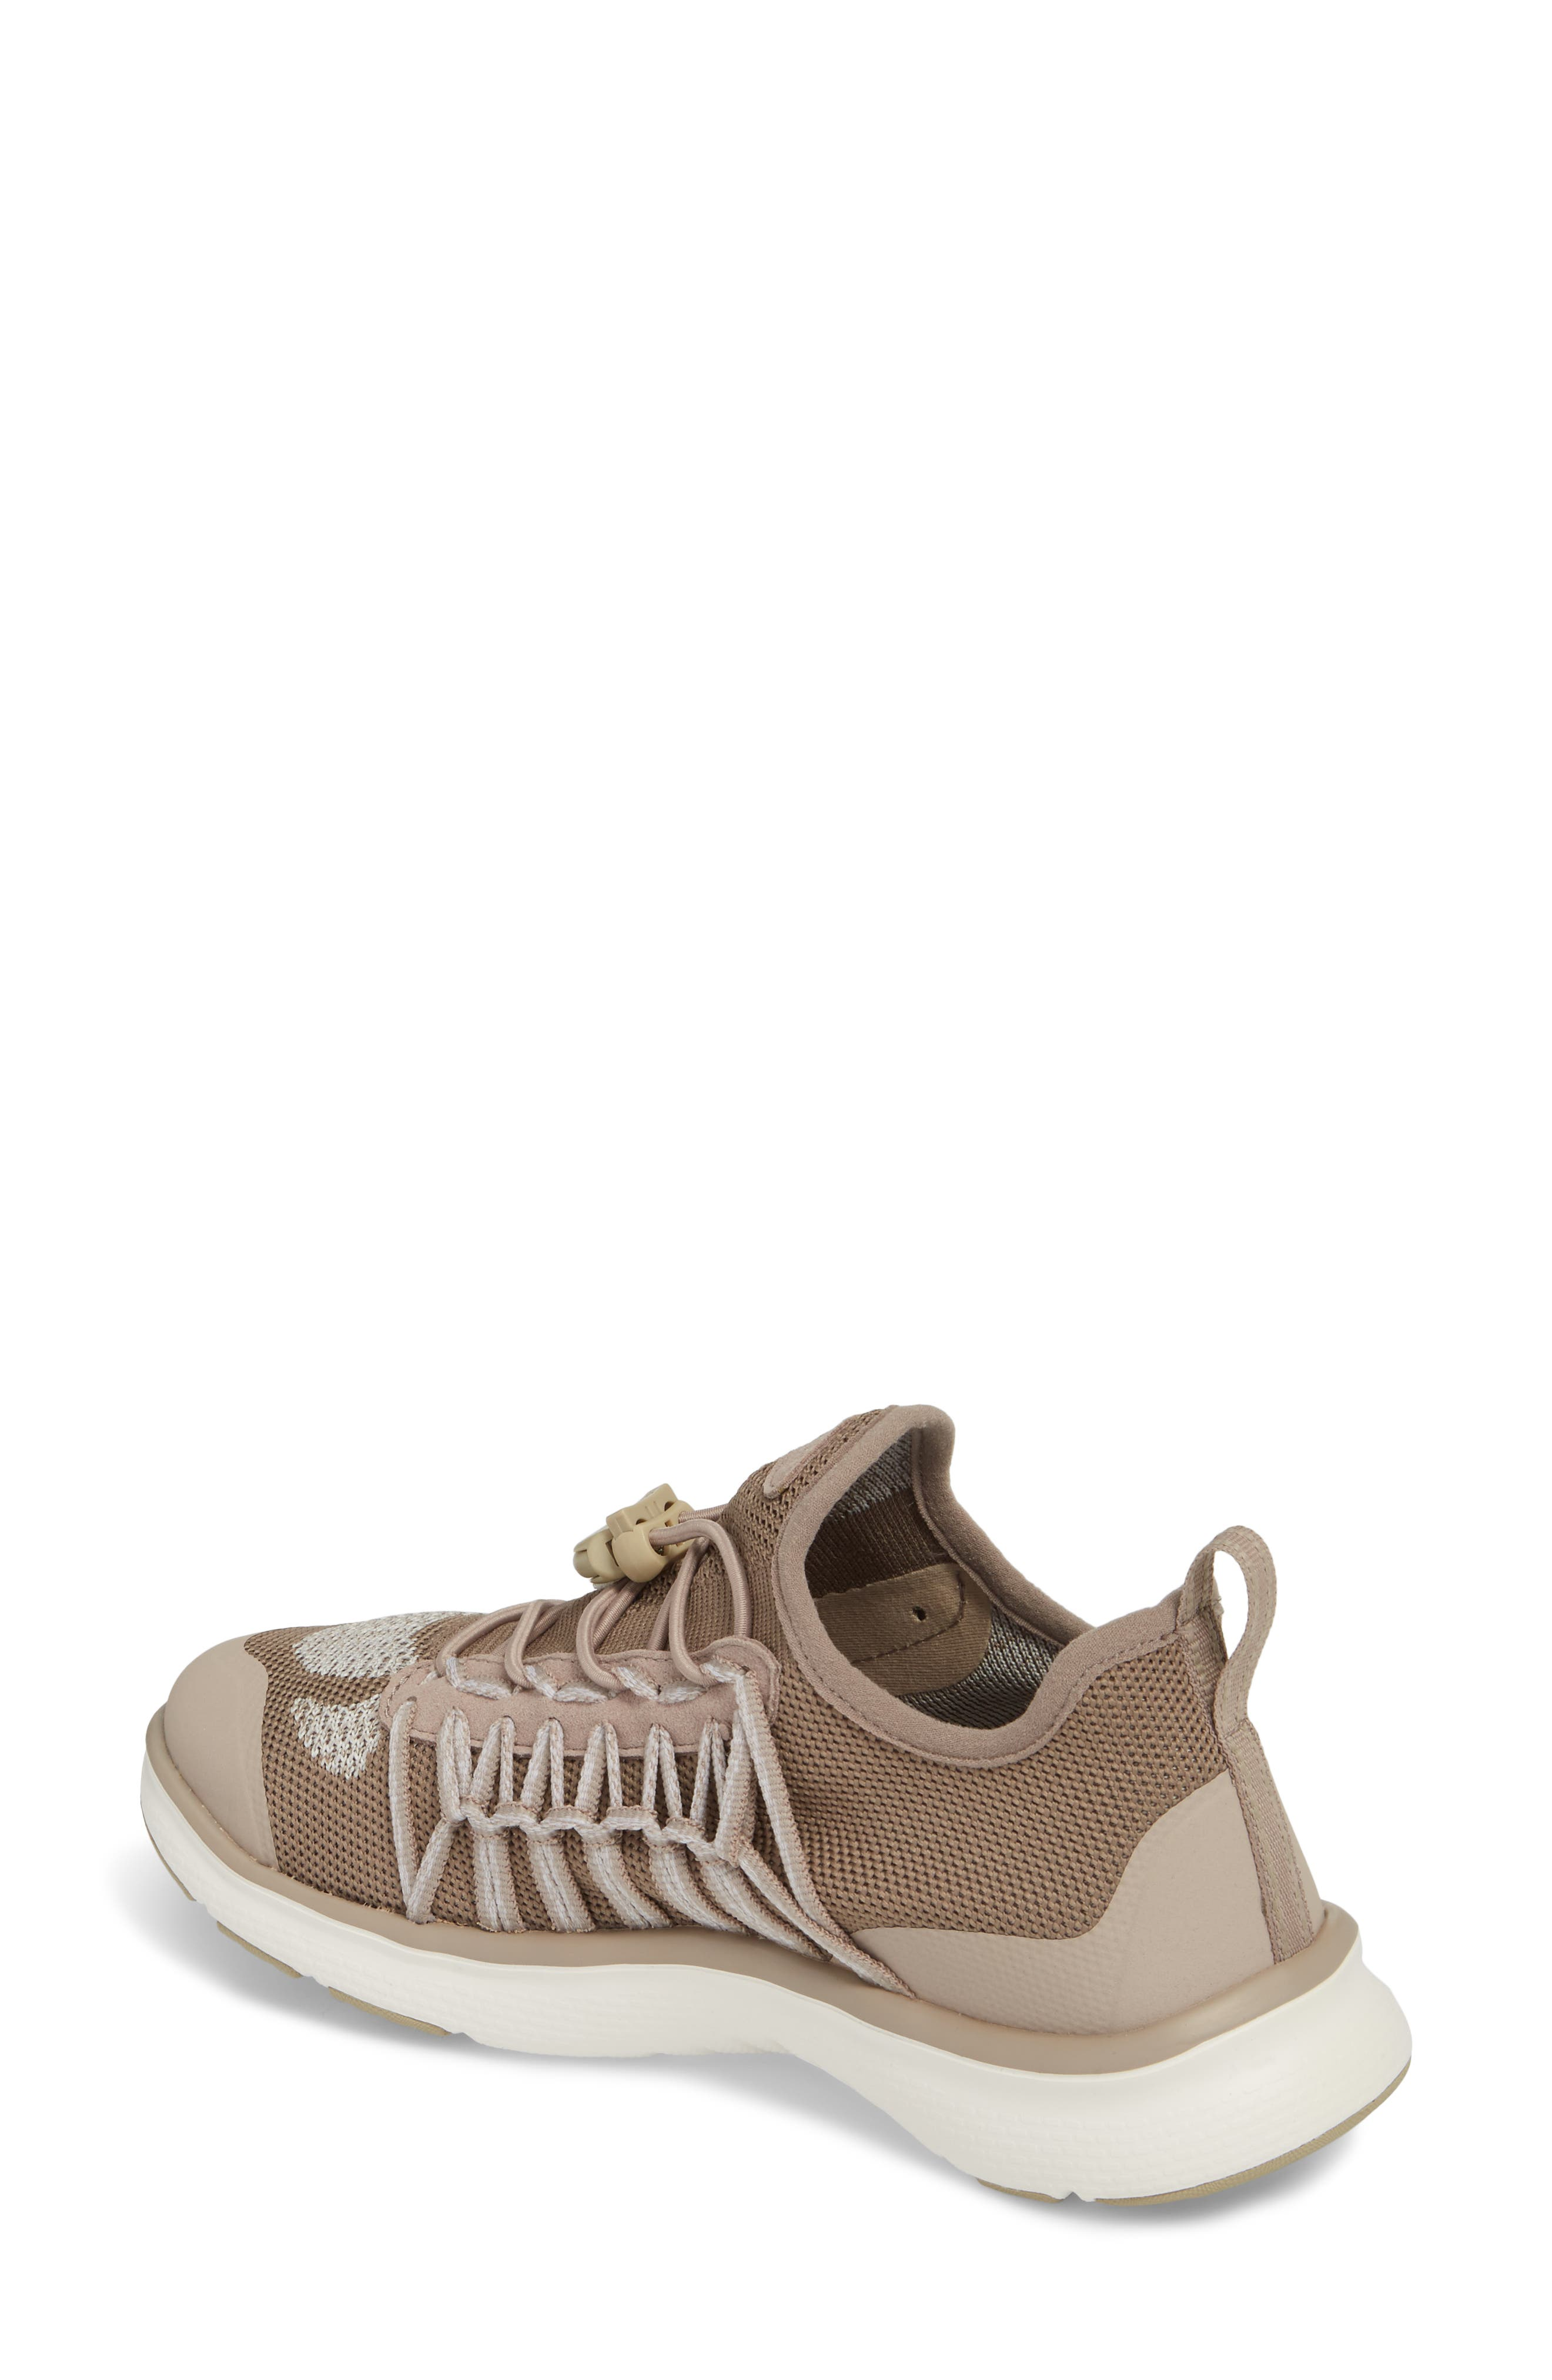 Uneek Exo Water Sneaker,                             Alternate thumbnail 2, color,                             Plaza Taupe